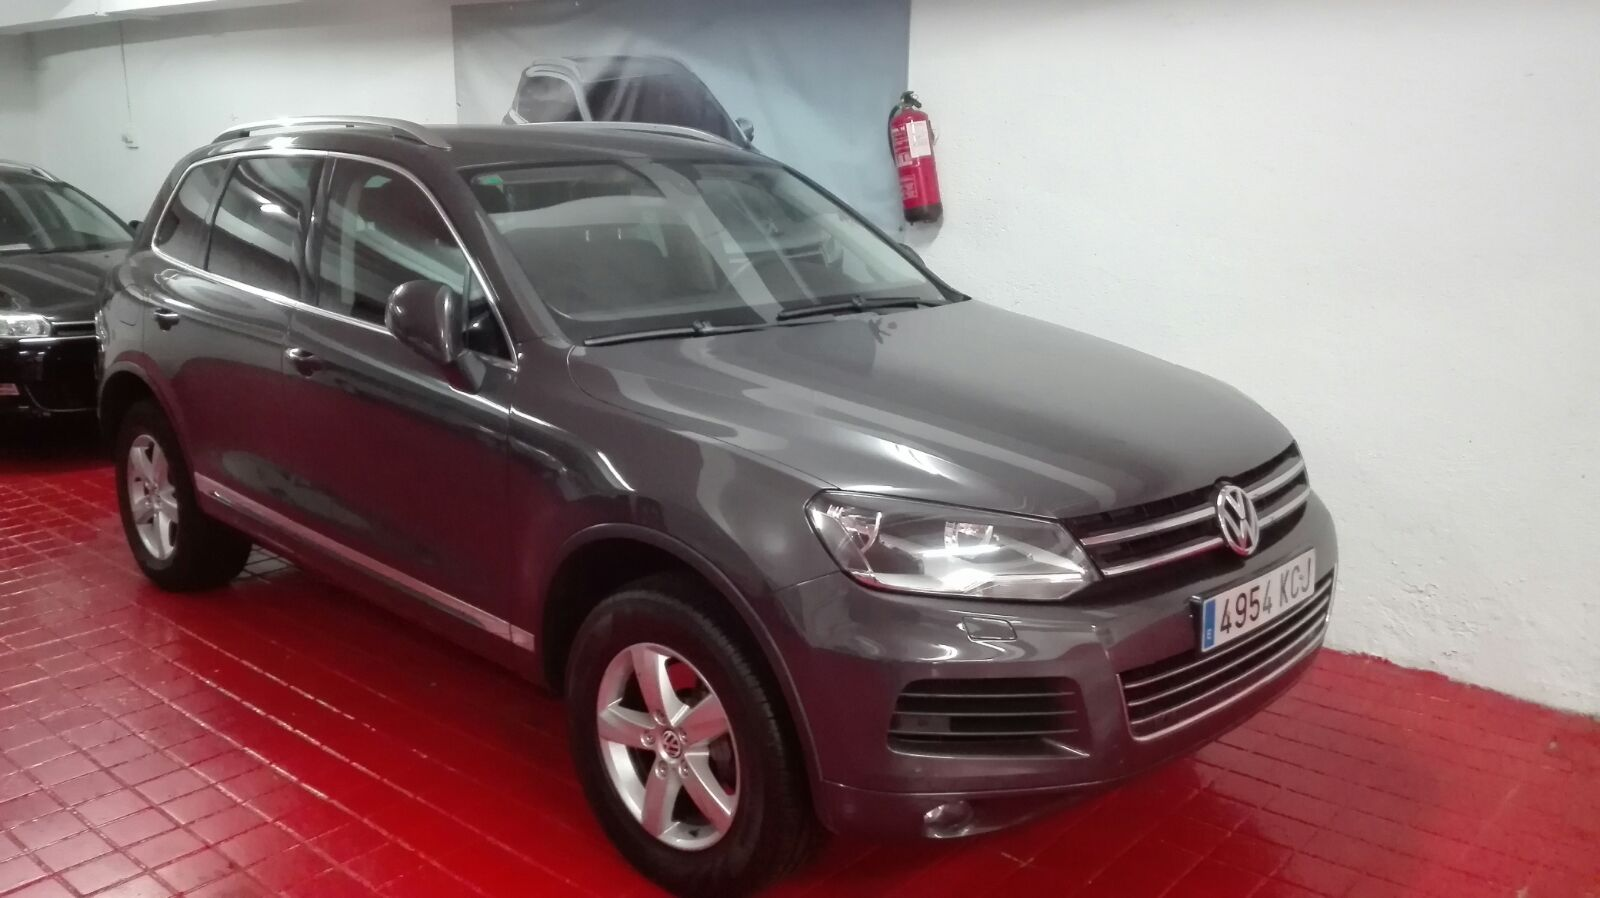 VOLKSWAGEN TOUAREG 3.0 V6 BLUEMOTION TECH SPANISH REG